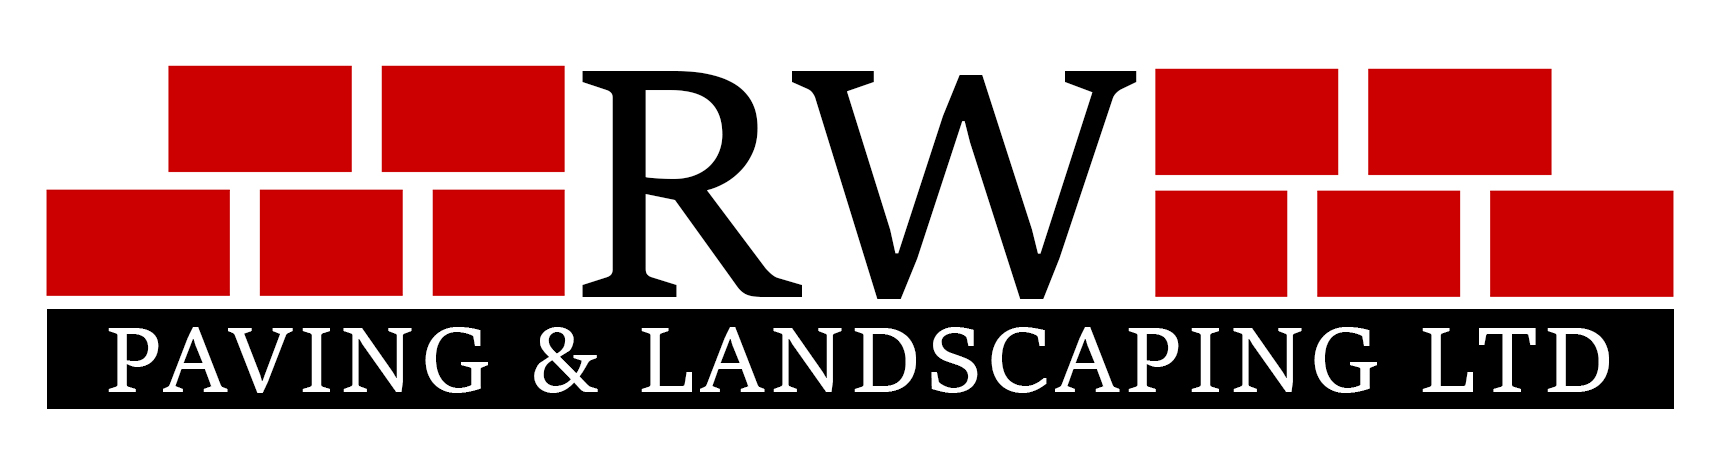 RW Paving & Landscaping | Harrogate & Ripon Block Paving Specialists, Patios & Driveways